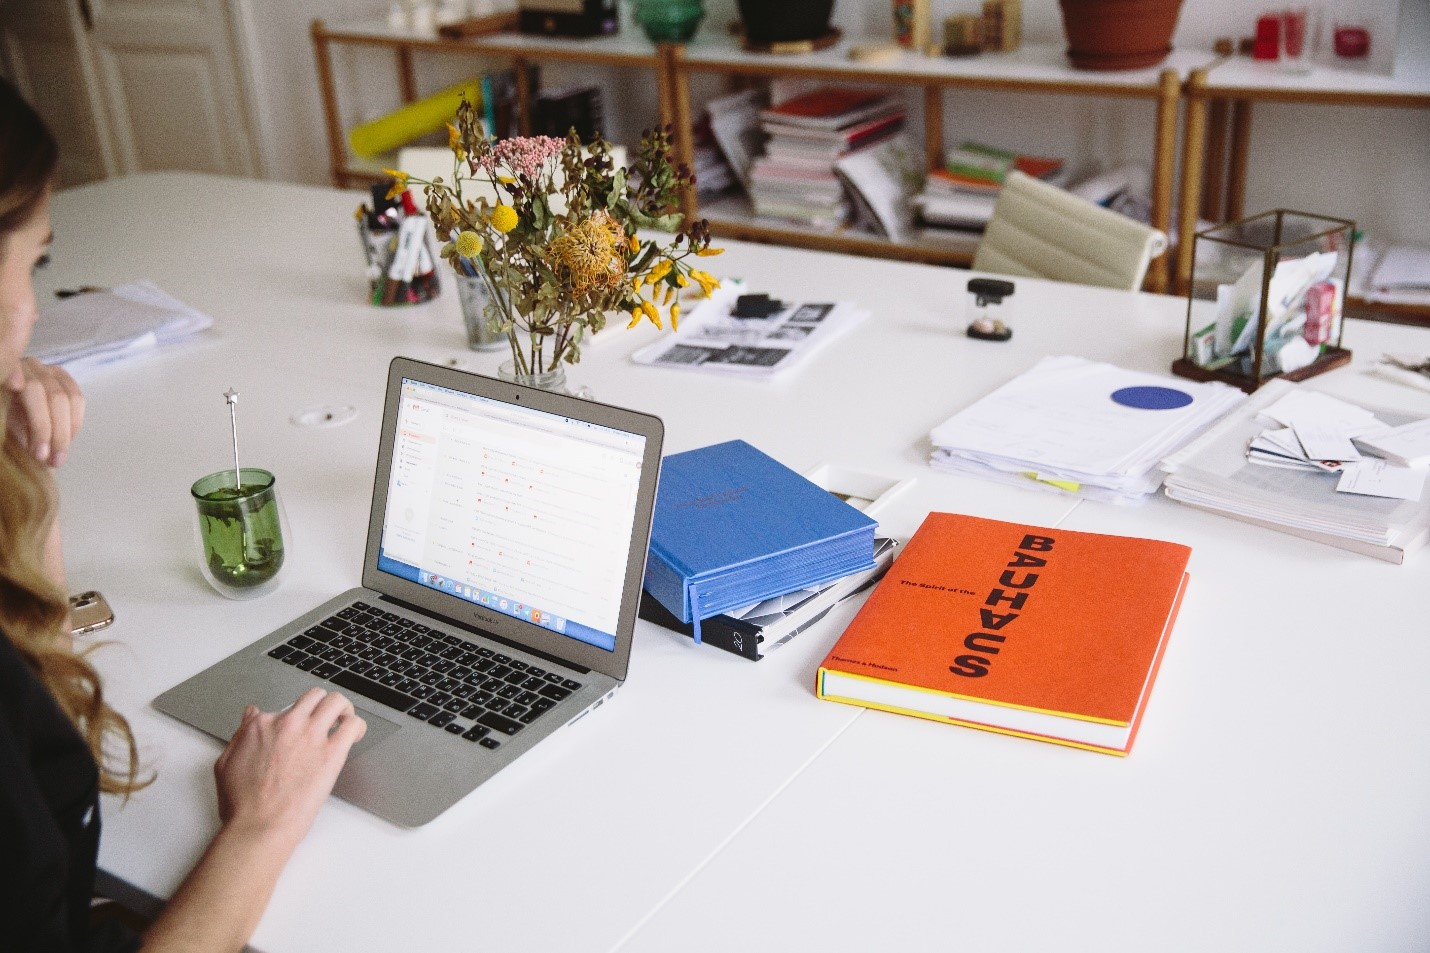 woman using laptop on white table with books scattered around